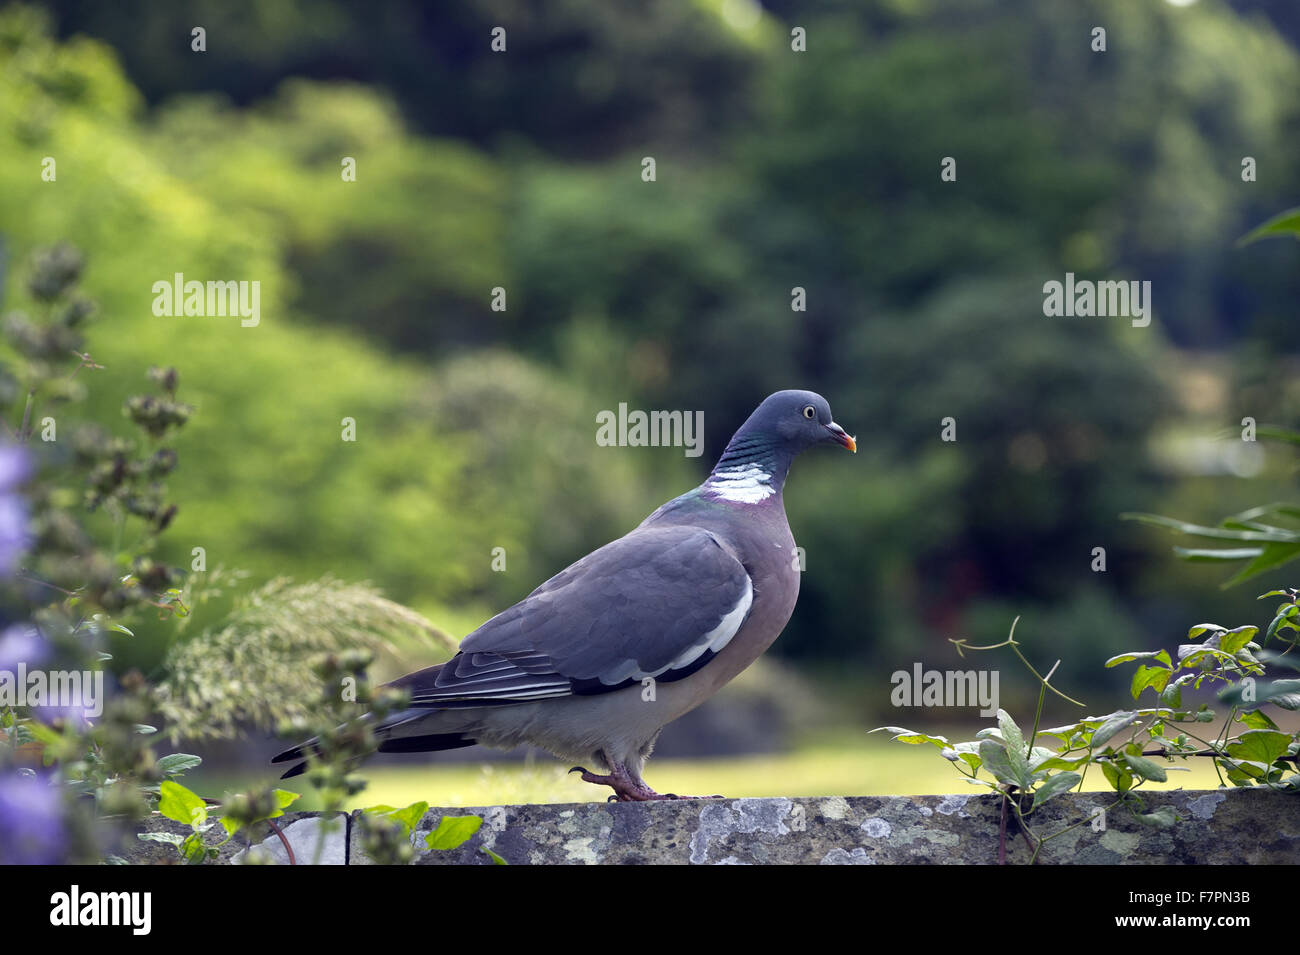 Wood pigeon at Bodnant Garden, Clwyd, Wales. Created by five generations of one family, Bodnant sits perfectly within - Stock Image